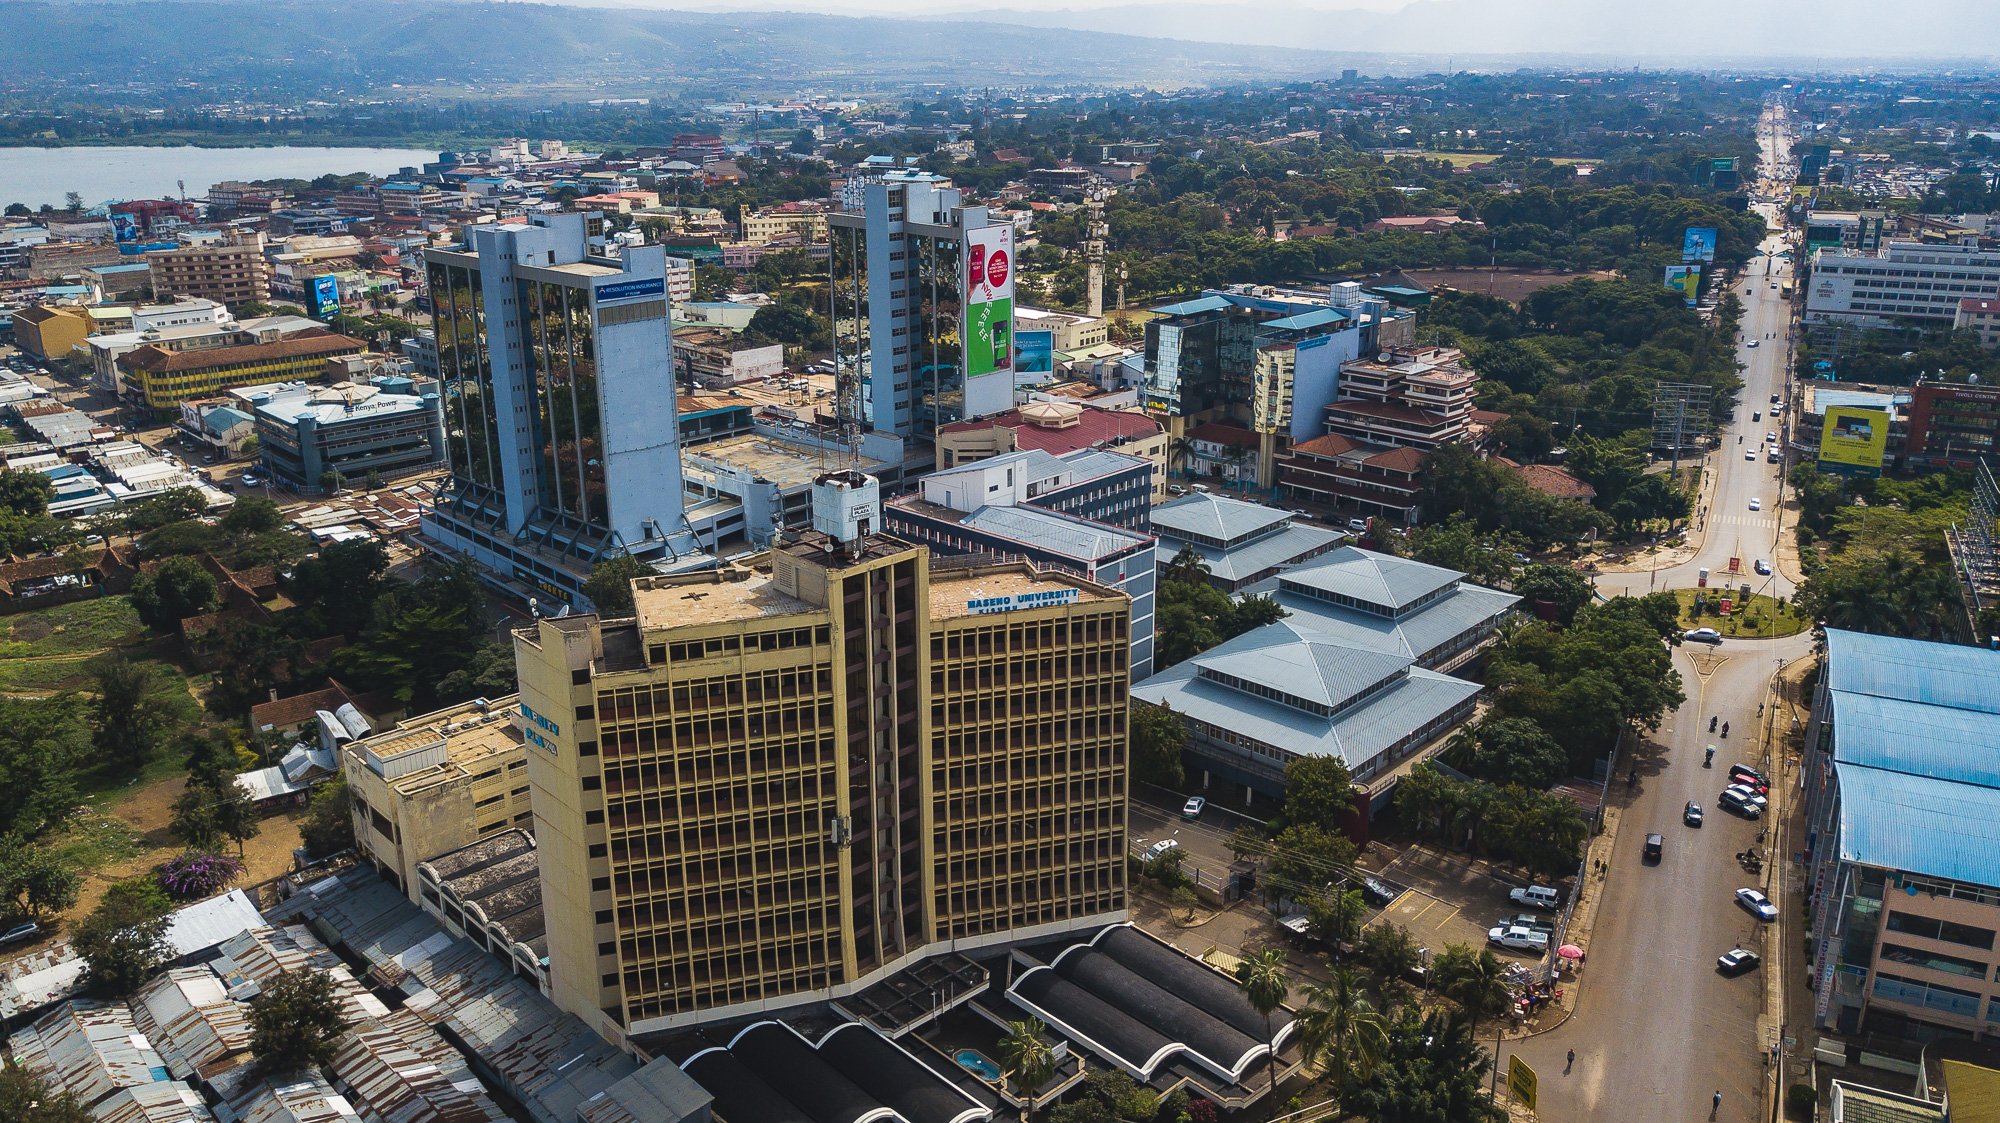 It is located in a building dating from 2015, 15 km from Kenyatta International Conference Centre.